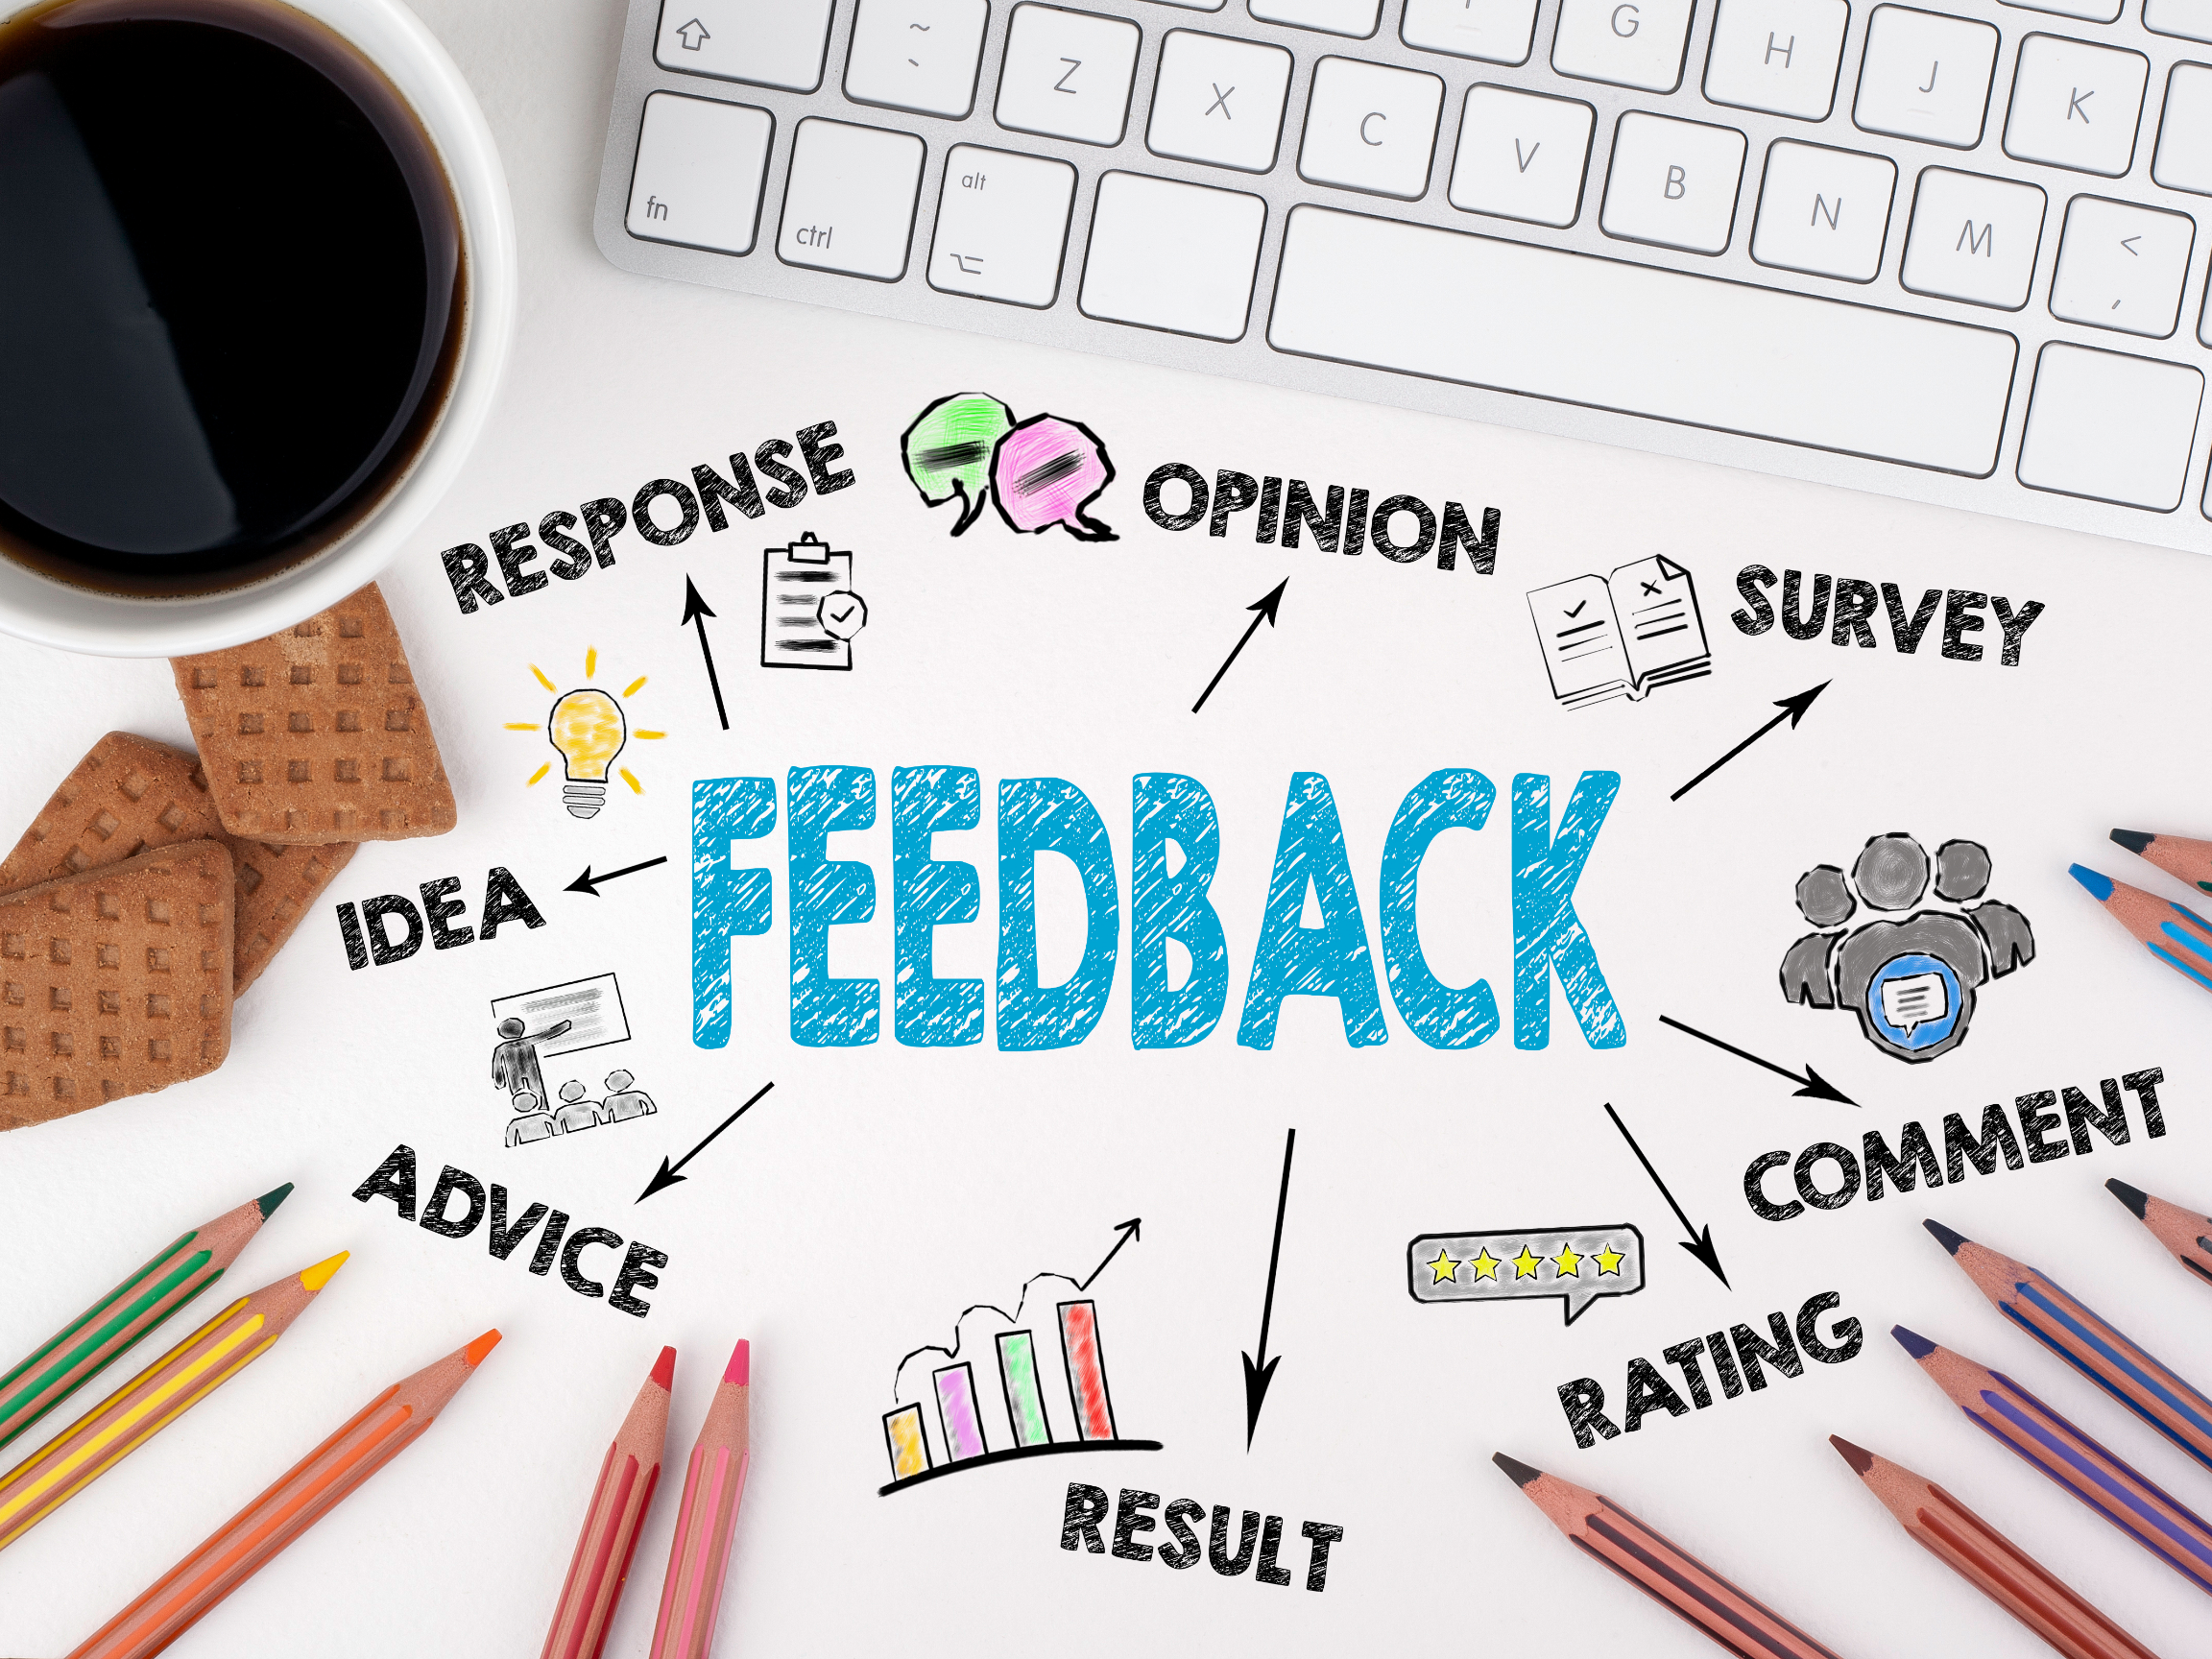 """keyboard, coffee mug, pencils, and """"feedback, opinion, survey, comments, ratings, result, advice, idea, response"""" written on the table."""